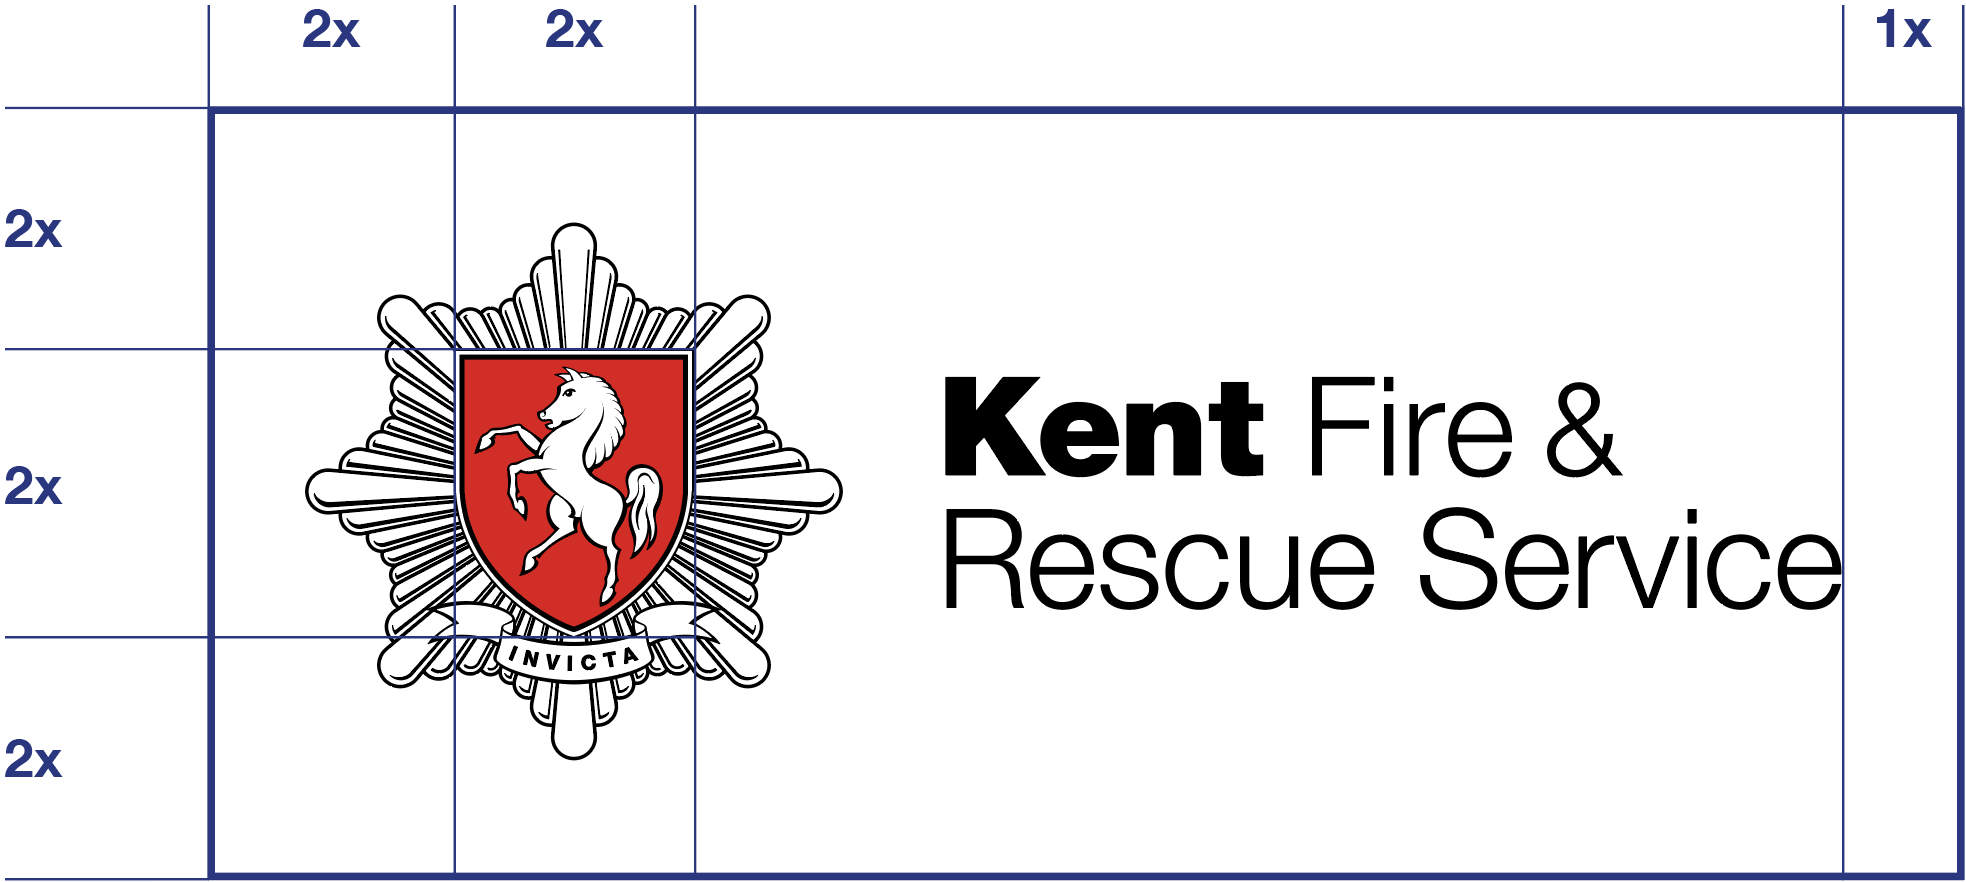 Kent Fire & Rescue Service logo with exclusion zone